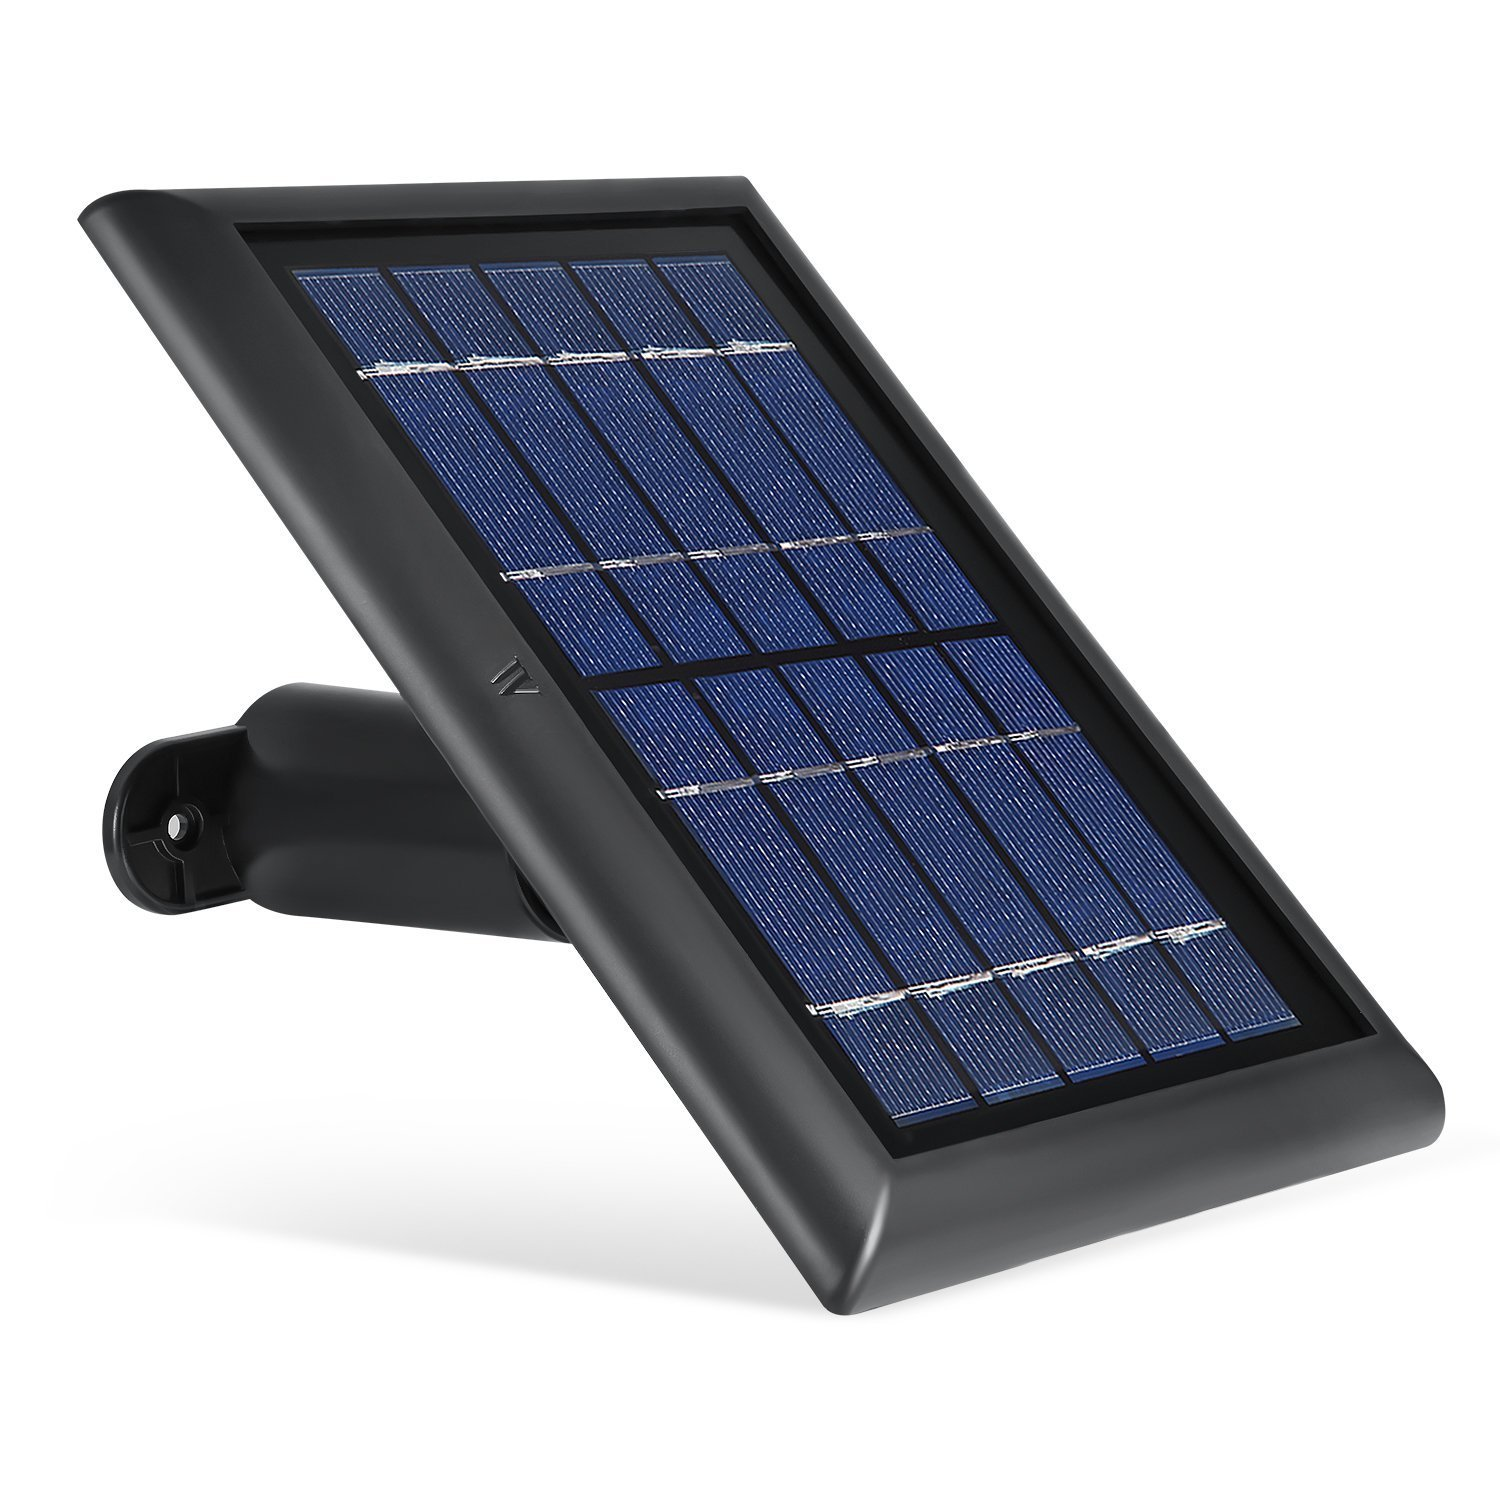 Solar Panel for Ring Spotlight Camera, Power Your Ring Spotlight Cam continuously with Our New Solar Charger - by Wasserstein (Black)